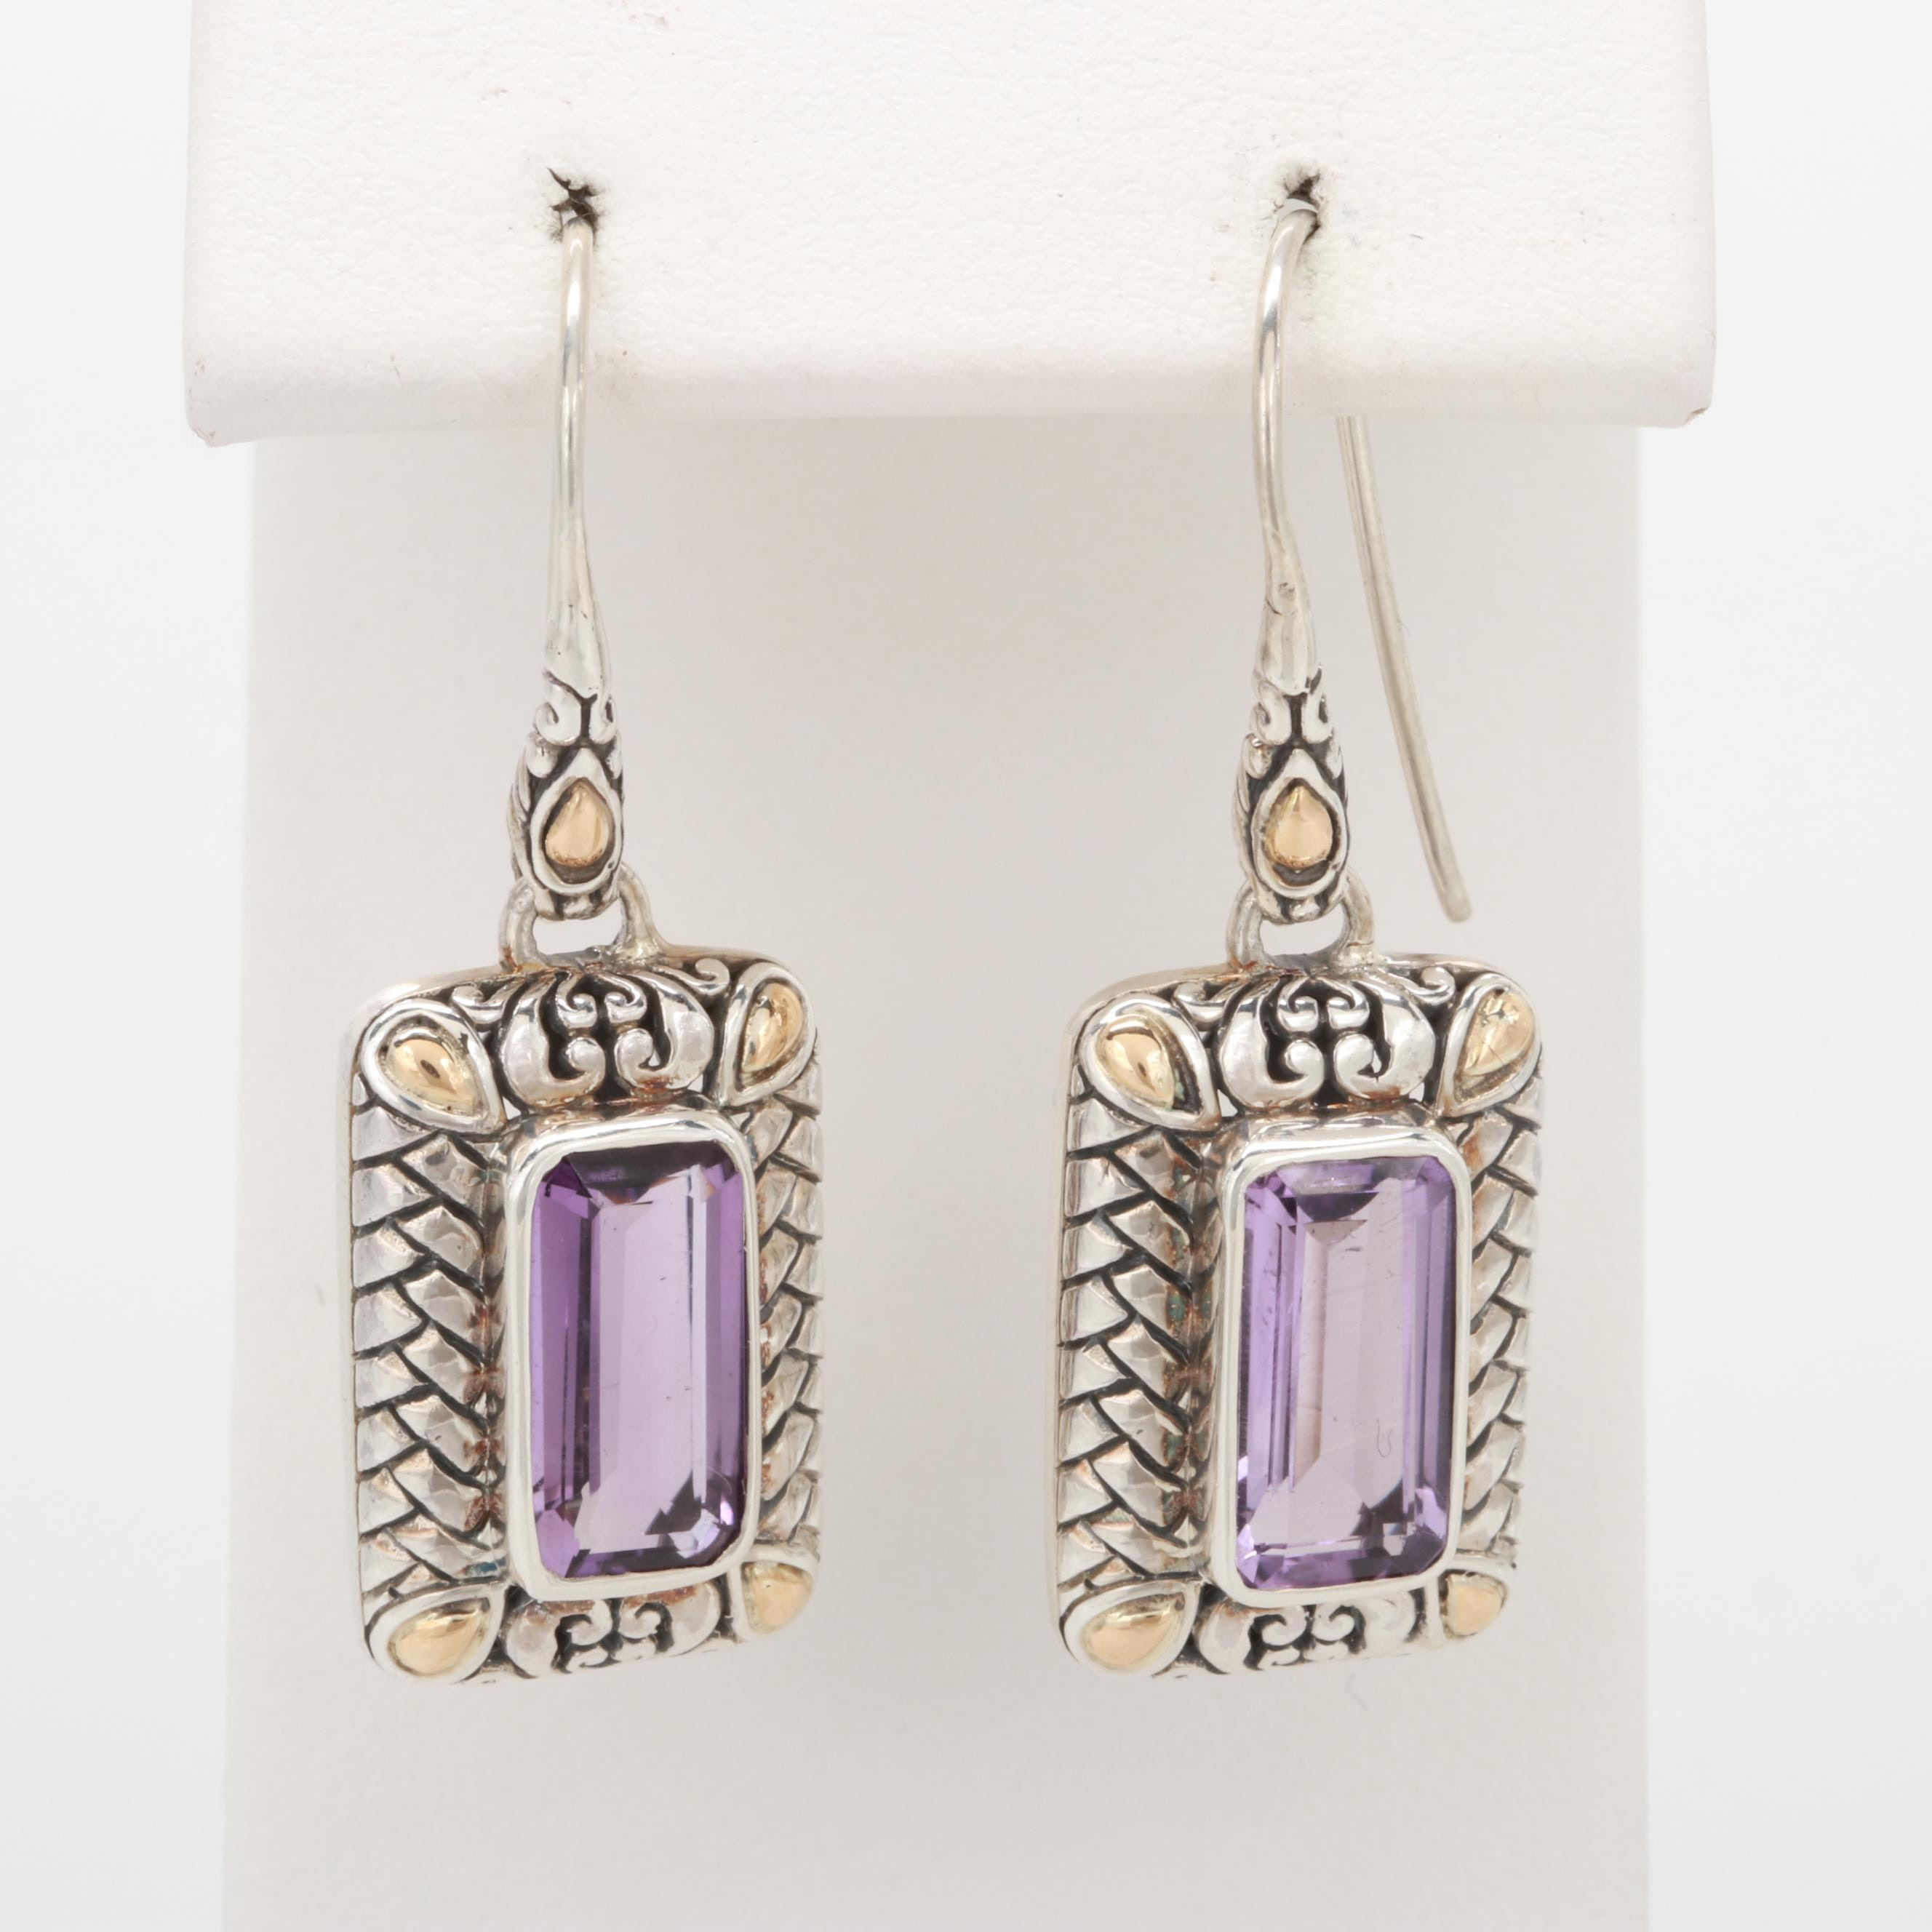 Robert Manse Sterling Silver Amethyst Earrings with 18K Yellow Gold Accents